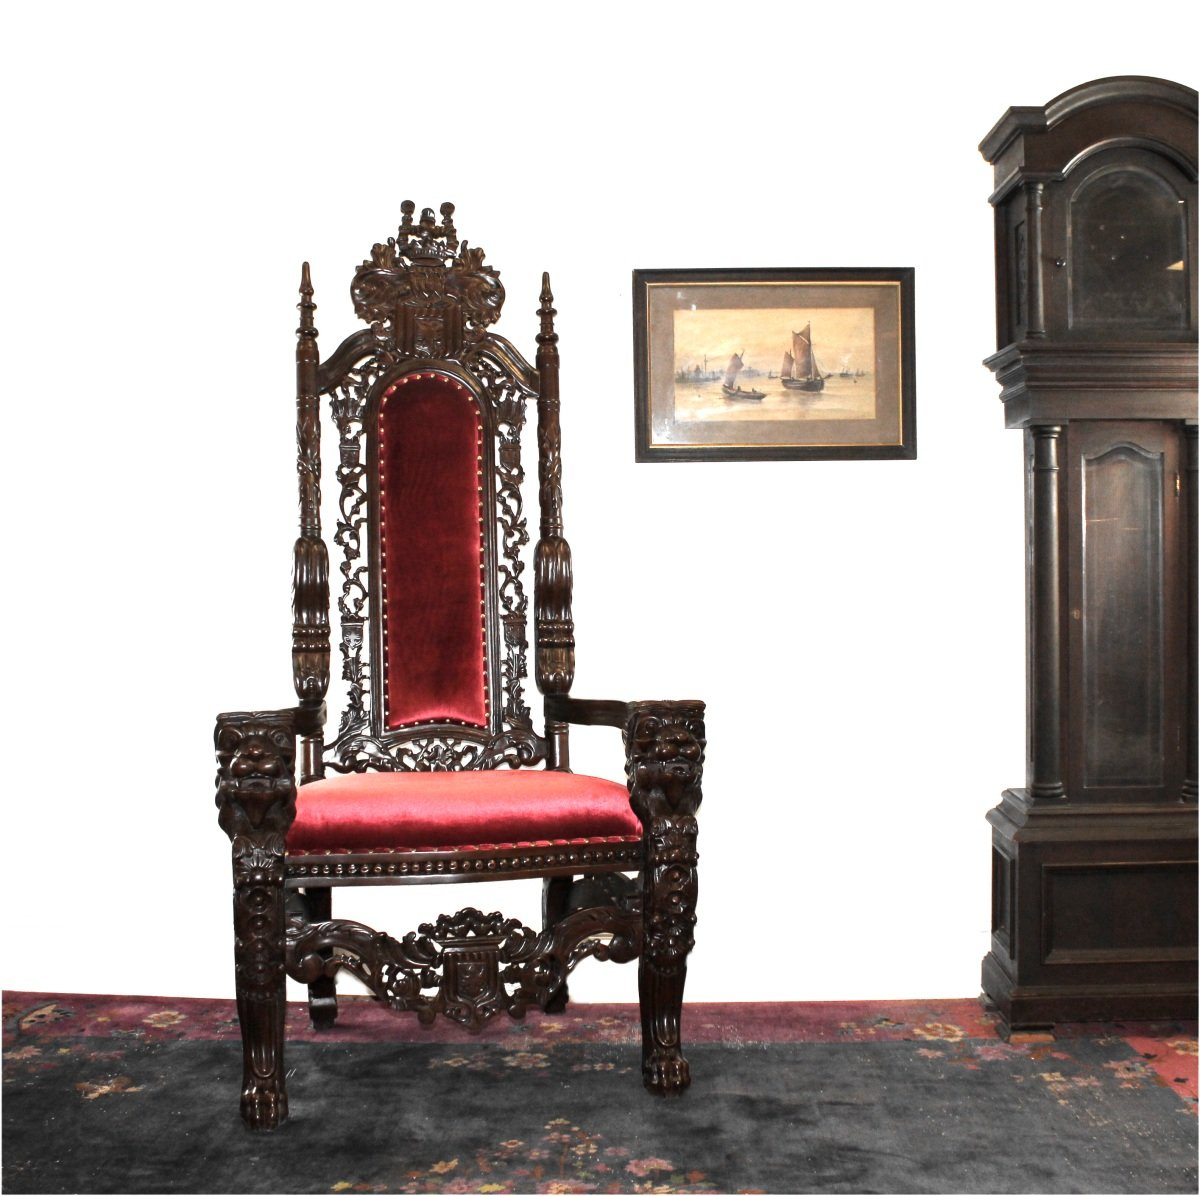 Amazon.com: Giant Mahogany Throne Chair for King / Queen or maybe ...